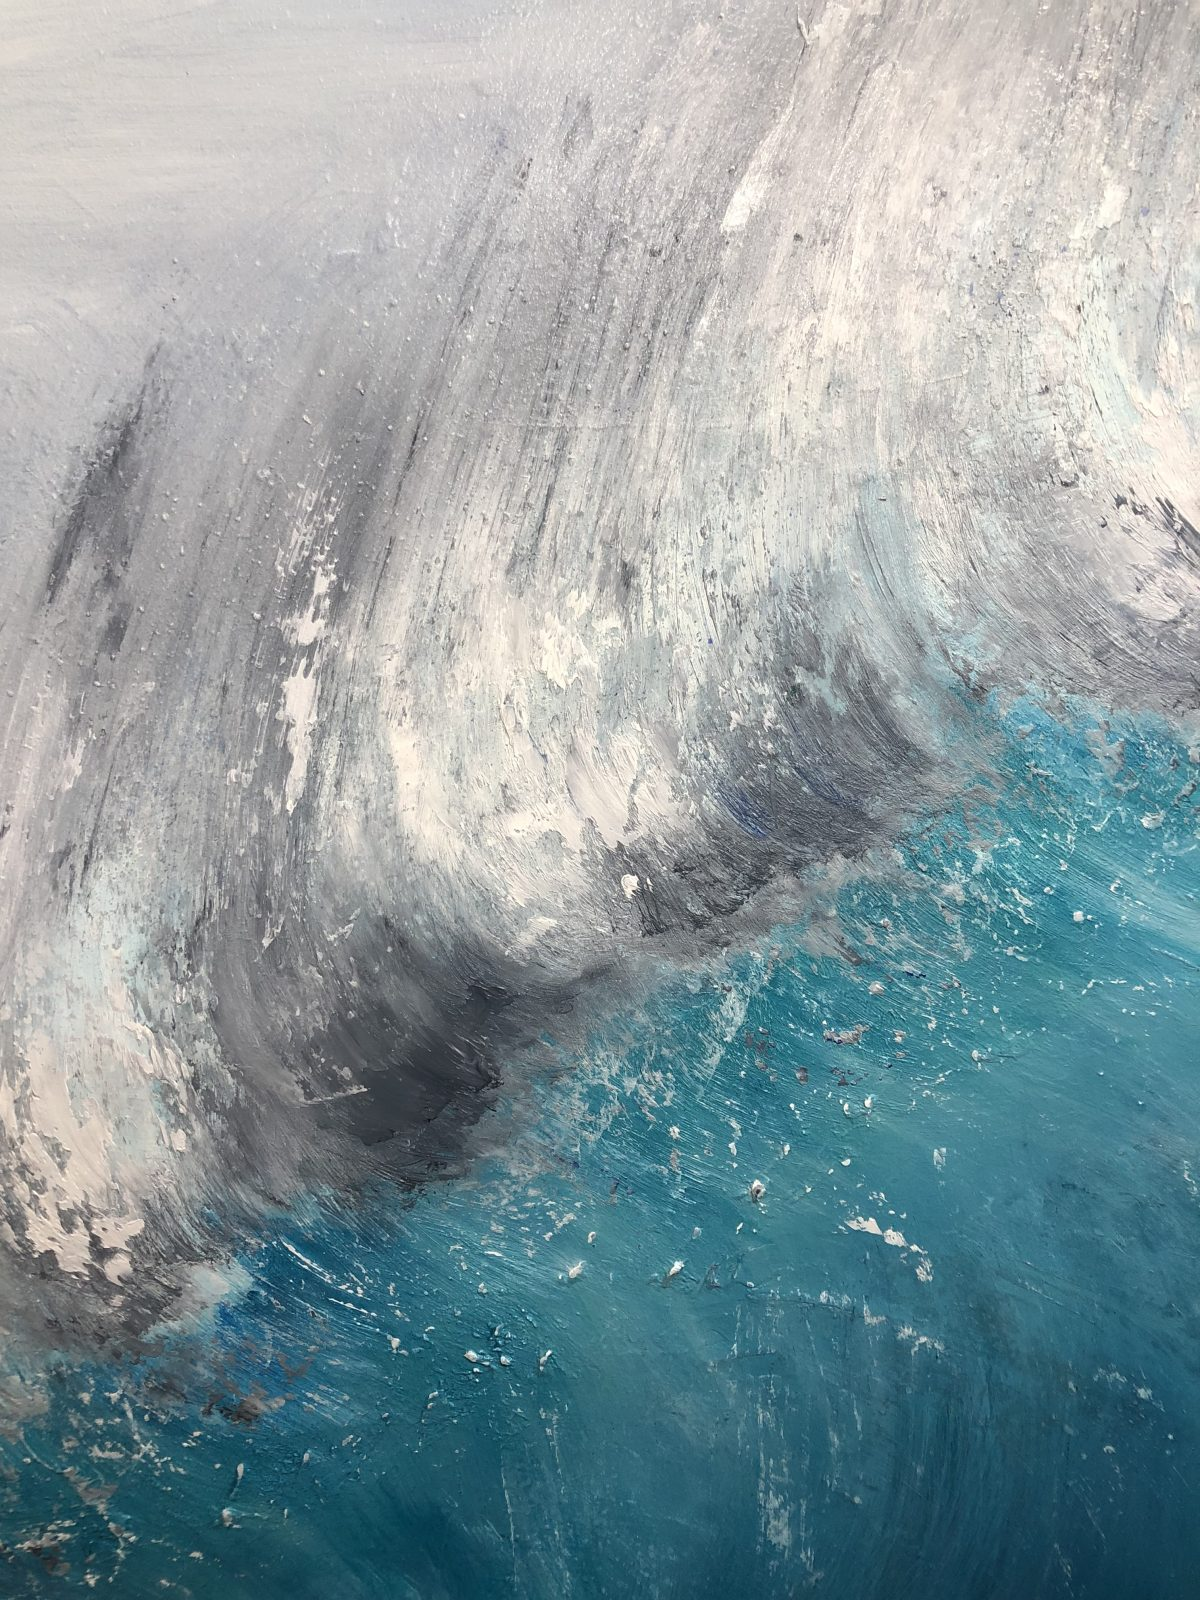 """""""Wave Breaking"""" by Devon based artist Catherine Kennedy. Large Oil on canvas 70 x 100 cm or 27.5 x 39.5 inches. Shows a large turquoise wave breaking. Seascape painting for sale £395"""